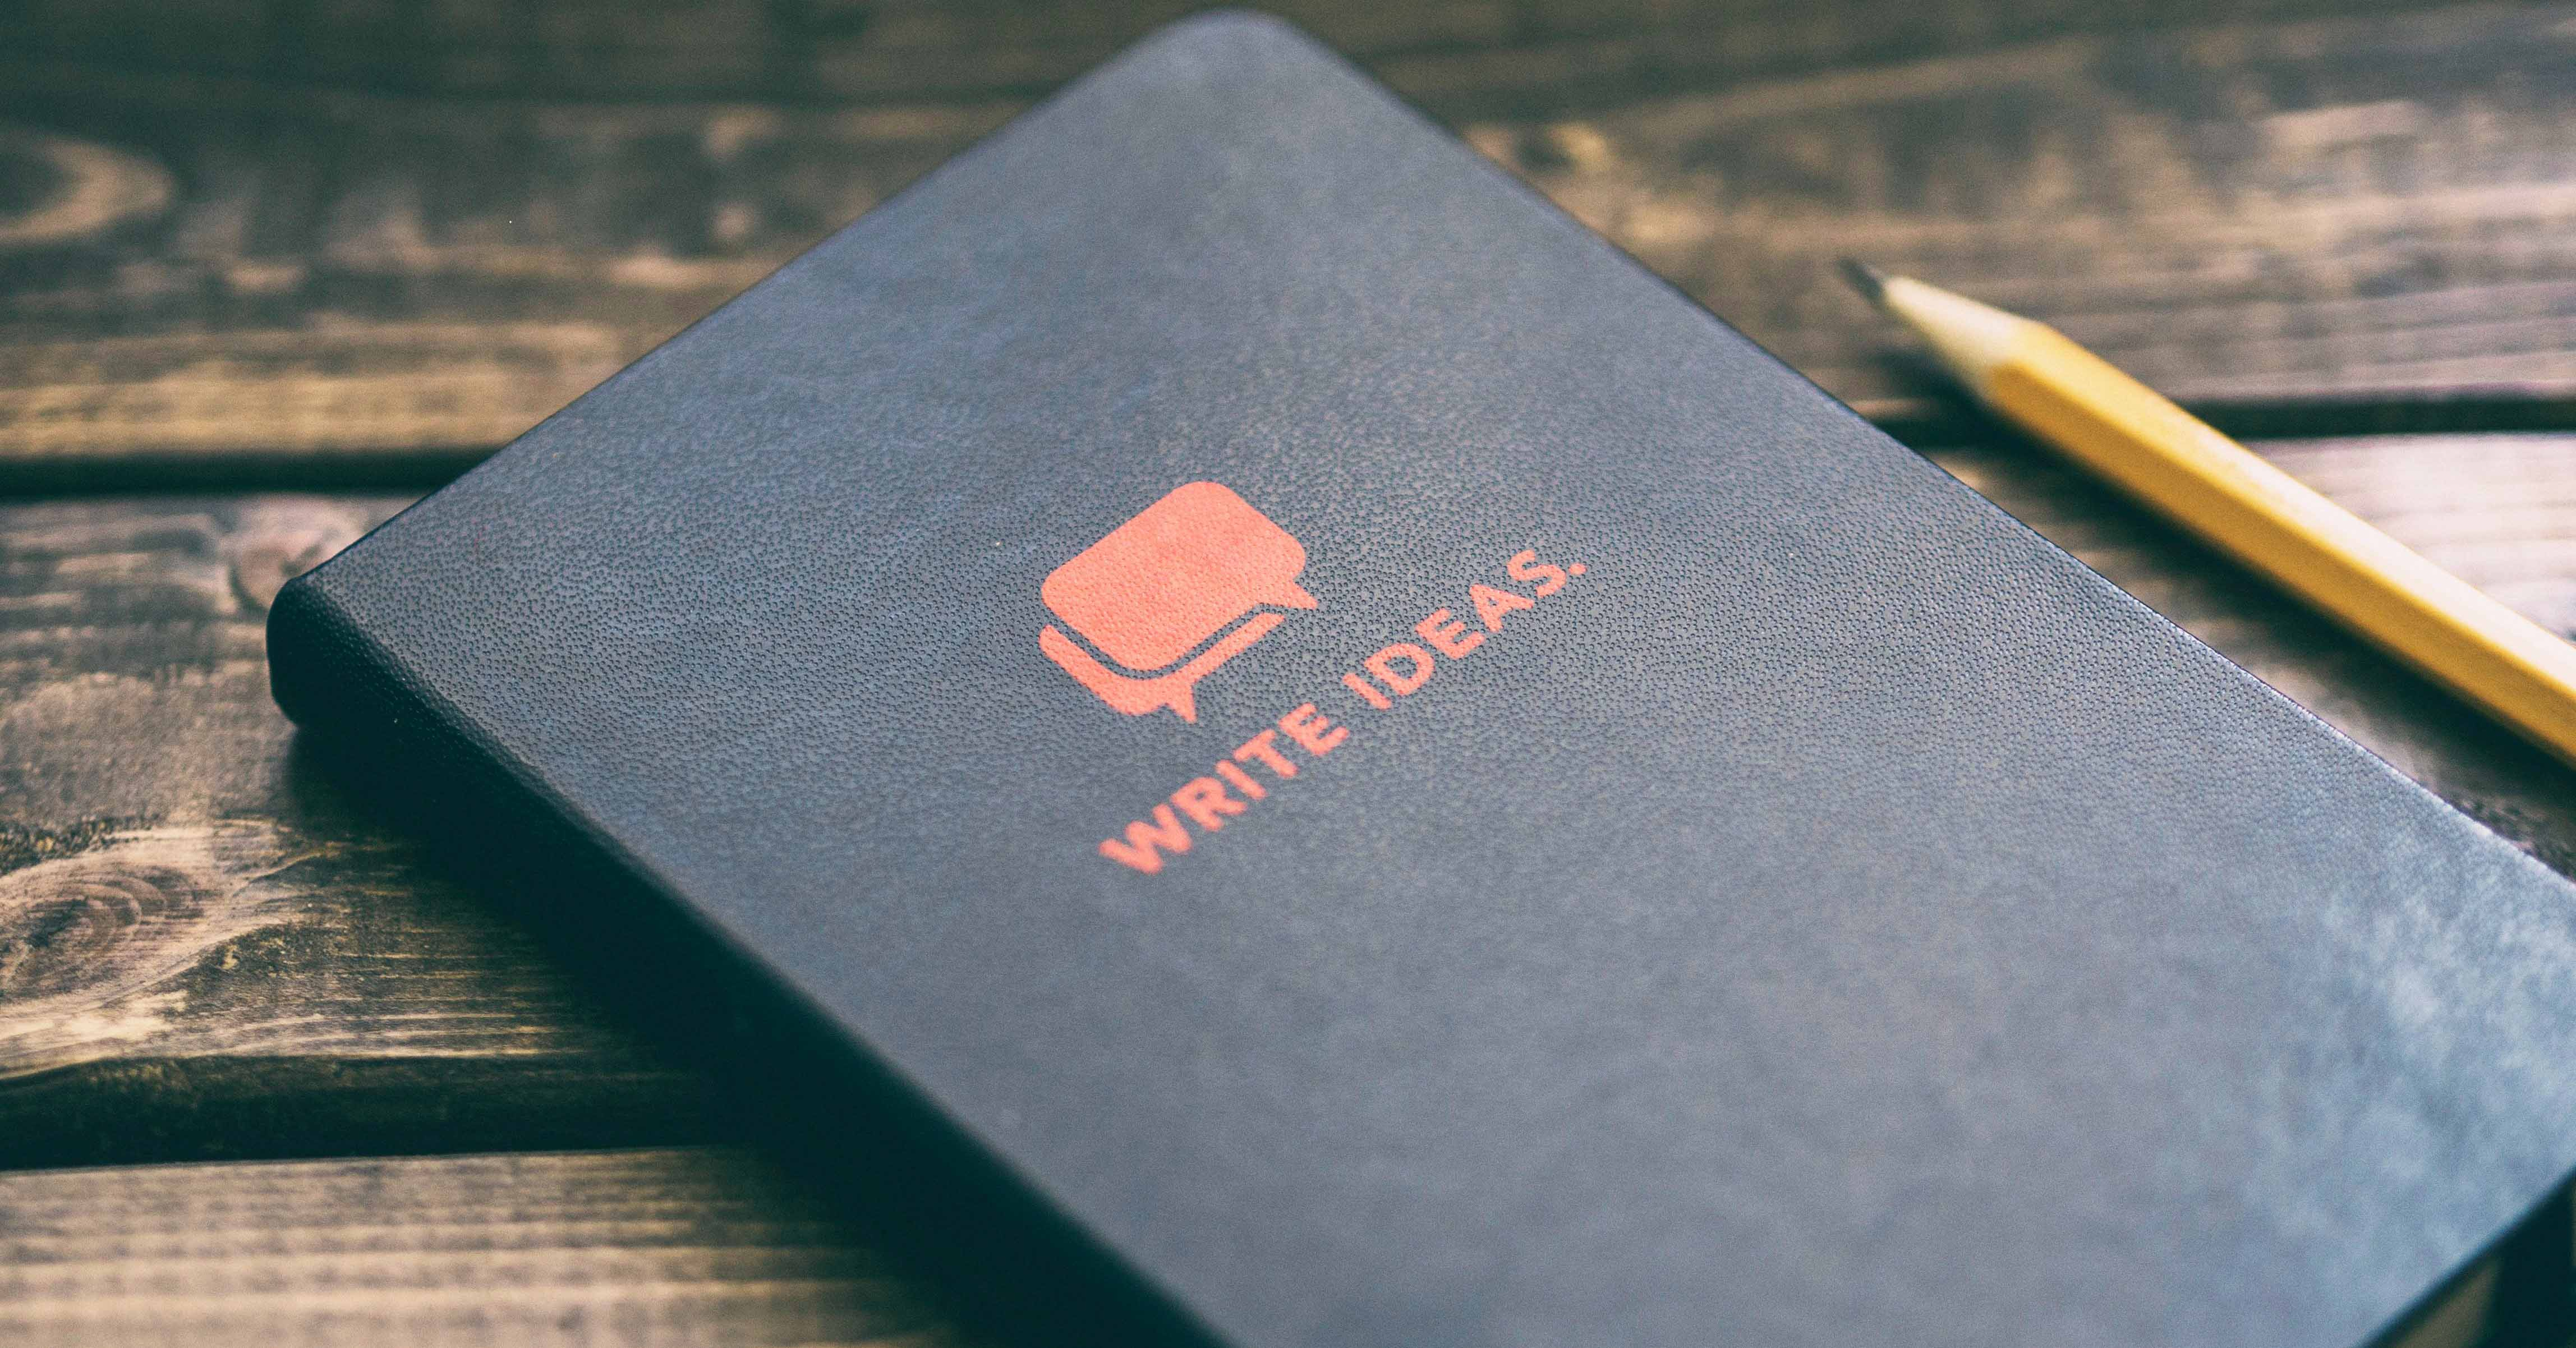 Photograph of a black, leather-bound journal with the words 'write ideas' on it. A pencil sits beside it.